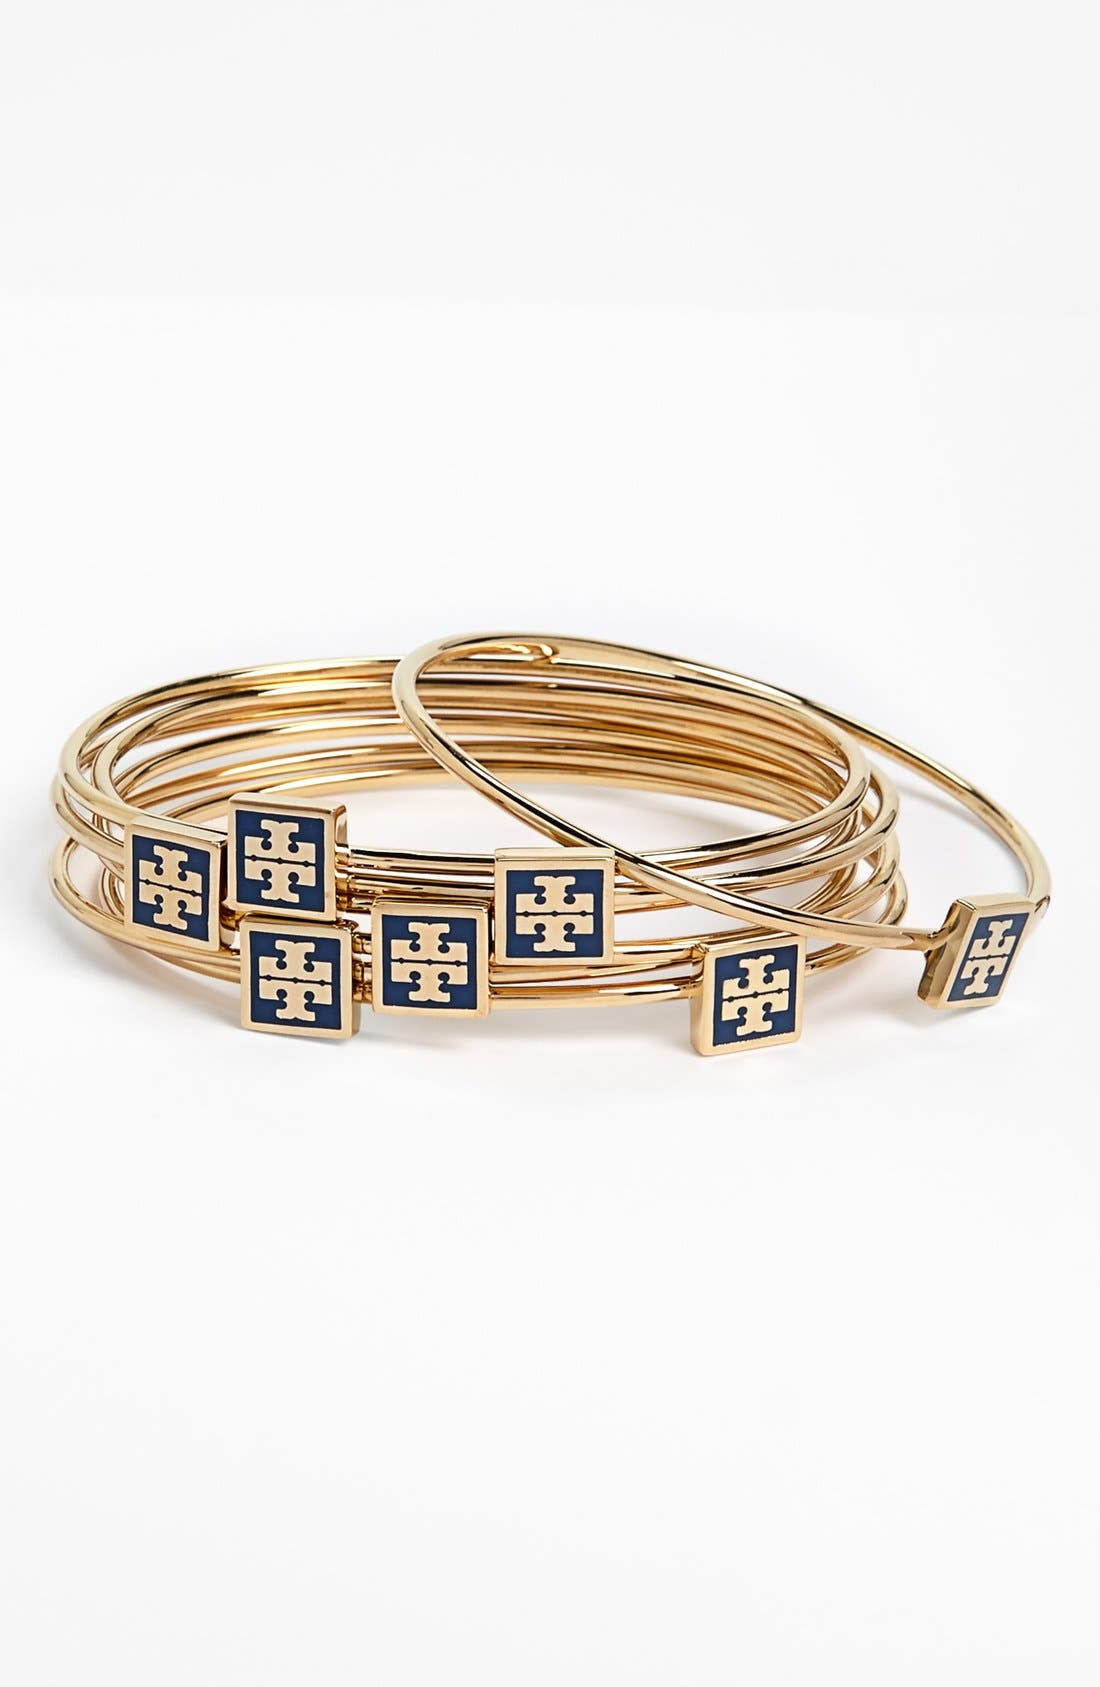 Main Image - Tory Burch Logo Skinny Bangles (Set of 7) (Special Purchase)